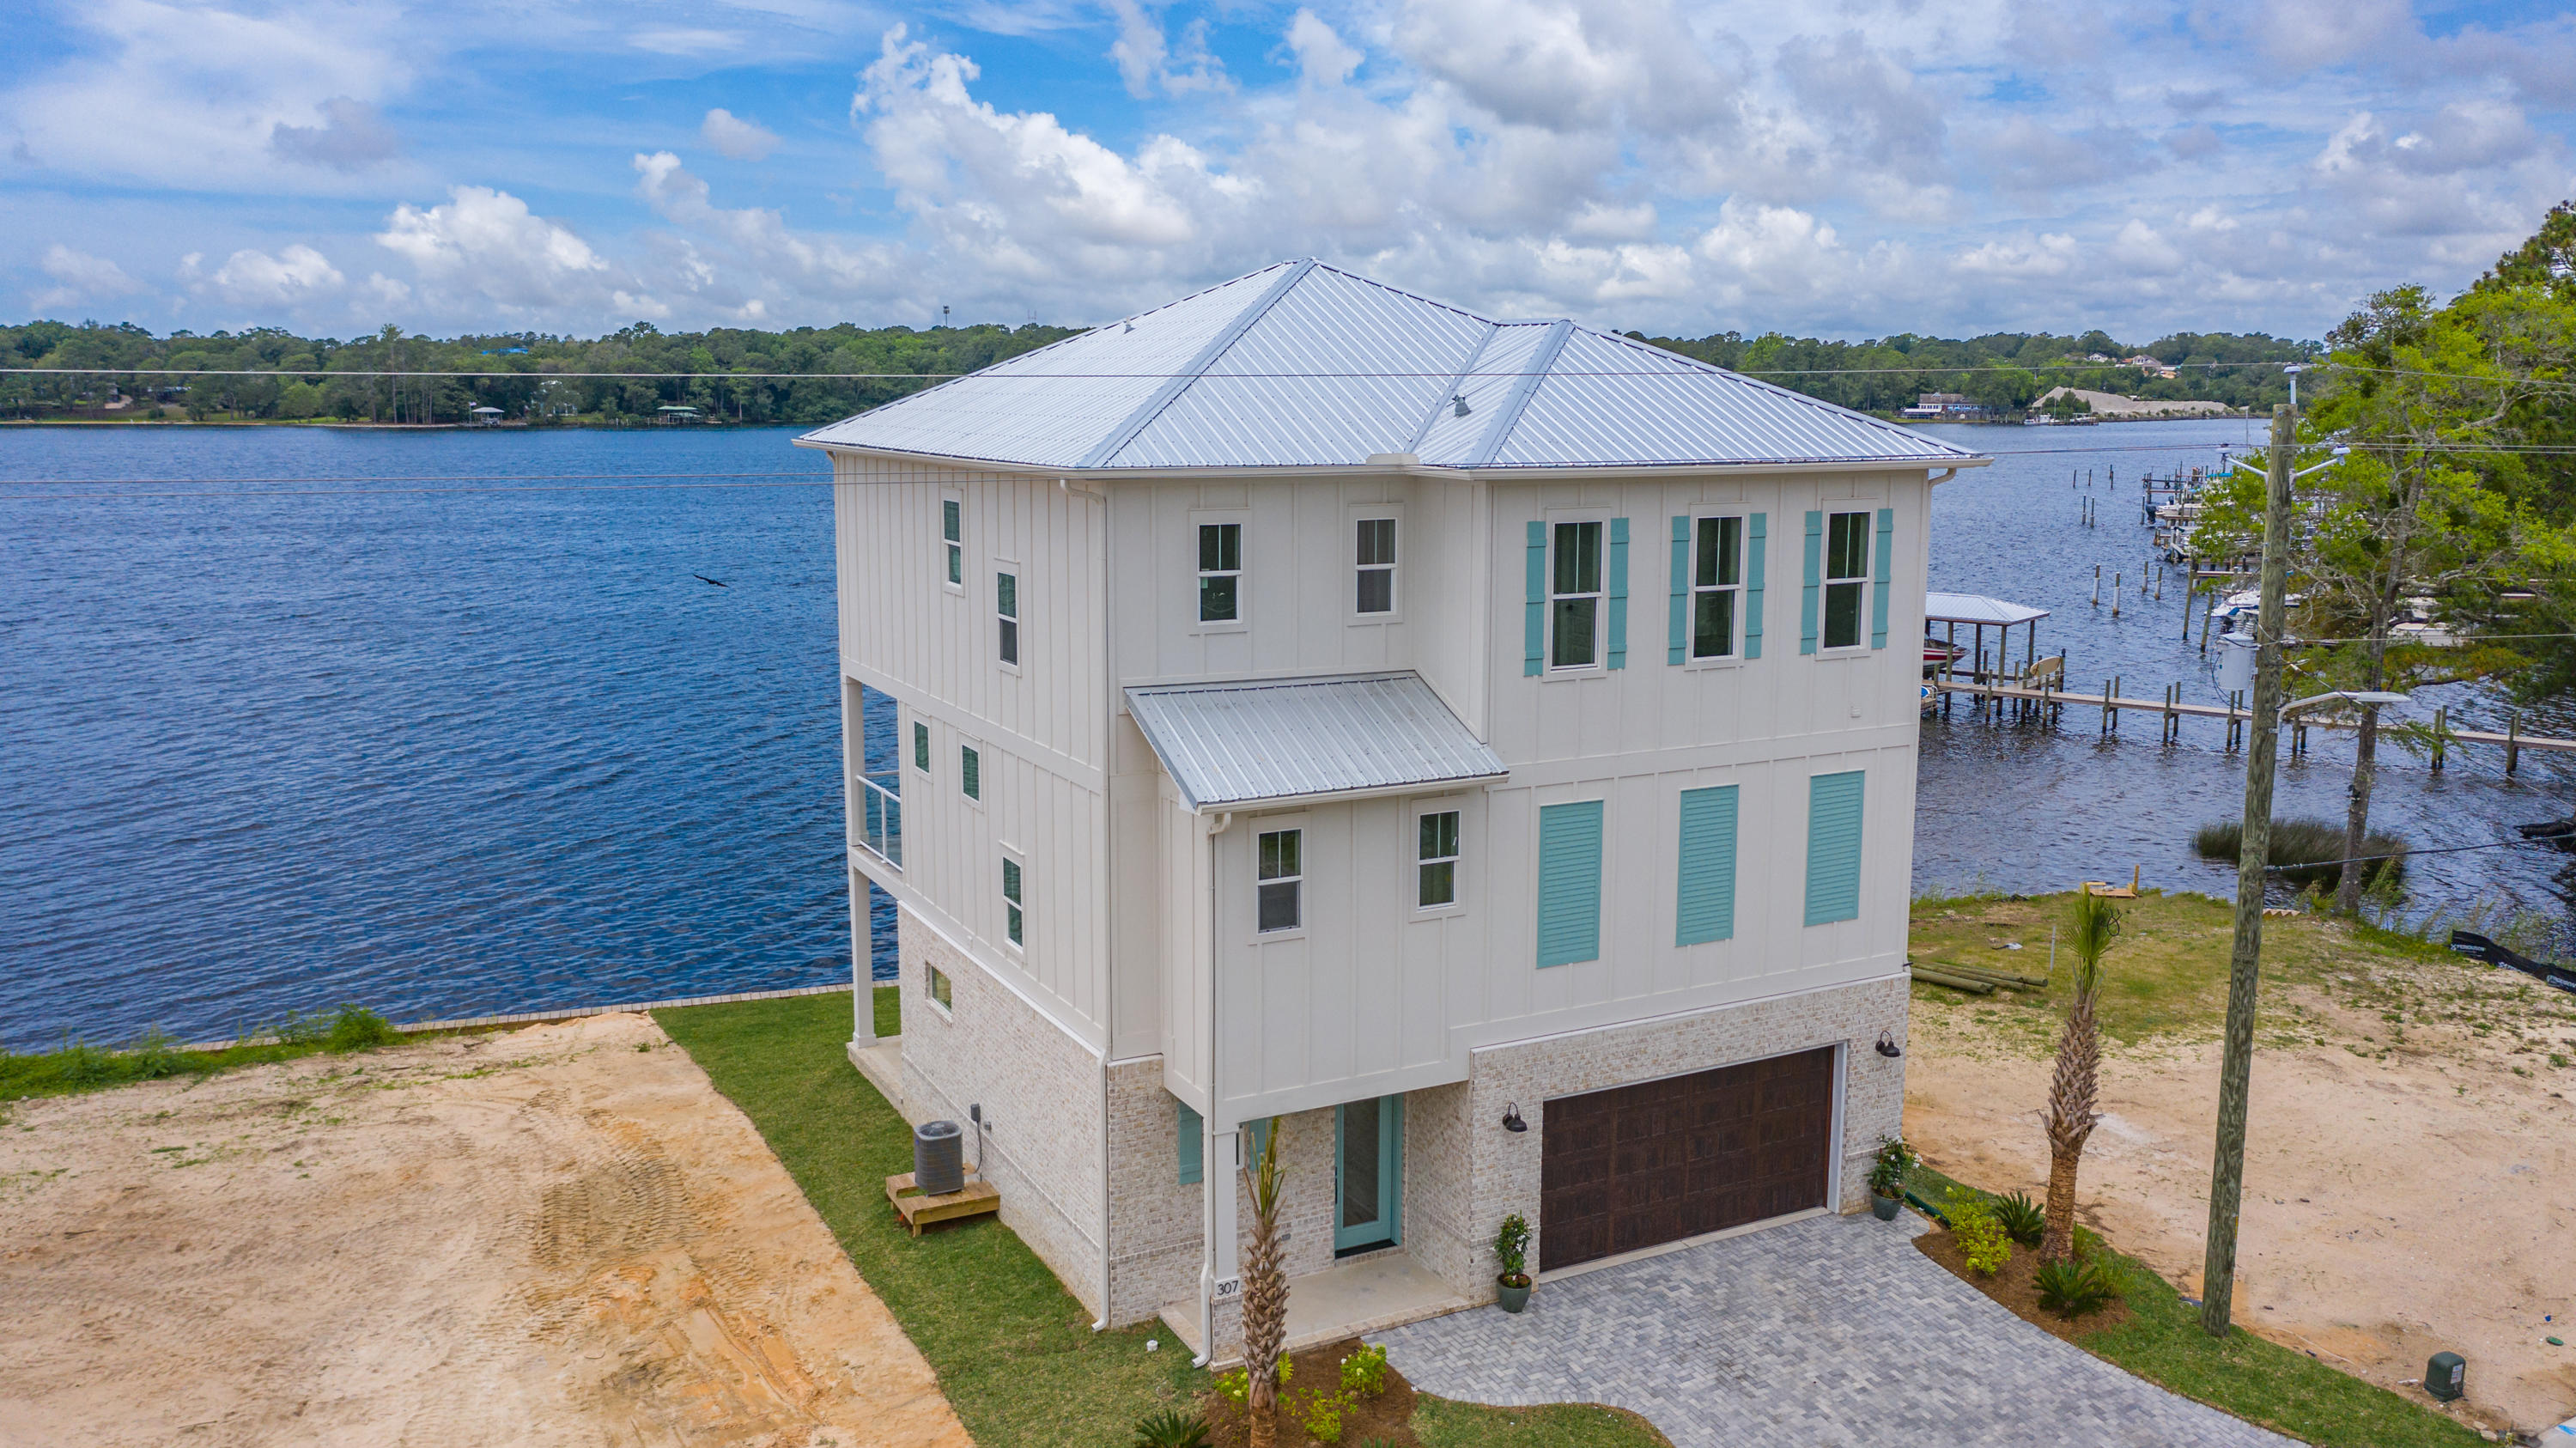 Welcome home to 307 Bayshore Drive. This brand new home is 2021 Parade of Homes Winner, located on t